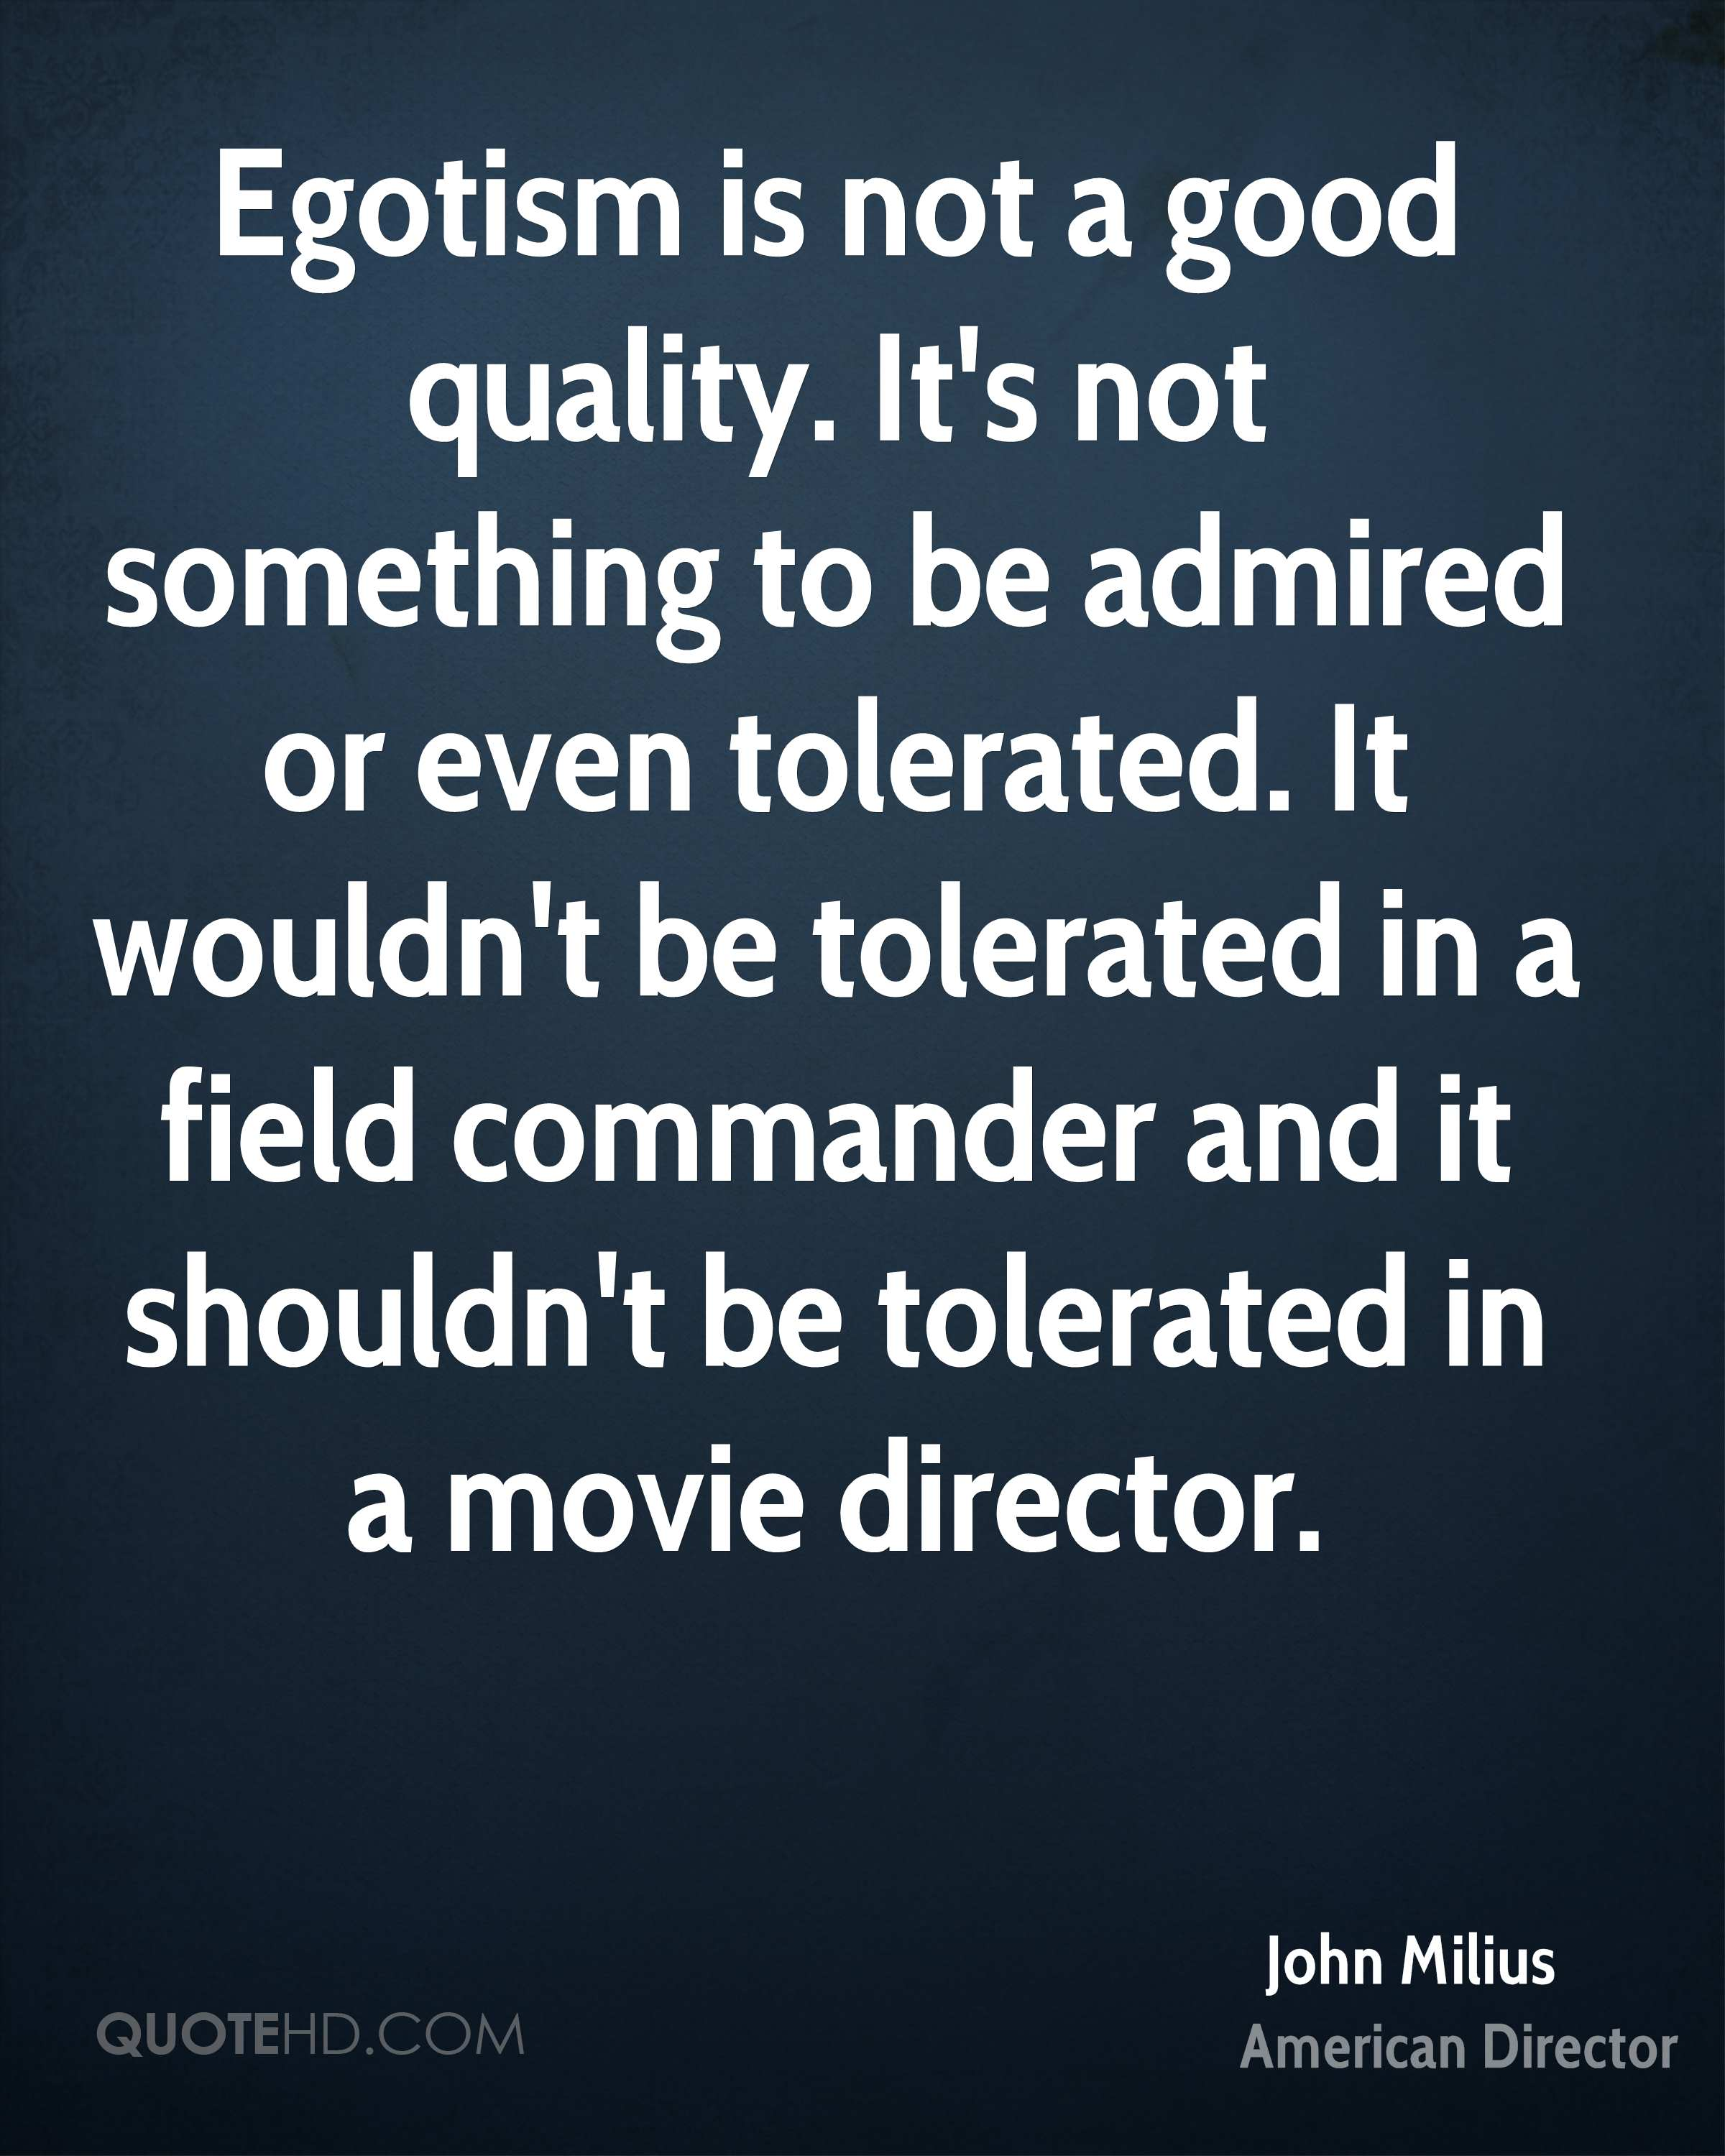 Egotism is not a good quality. It's not something to be admired or even tolerated. It wouldn't be tolerated in a field commander and it shouldn't be tolerated in a movie director.